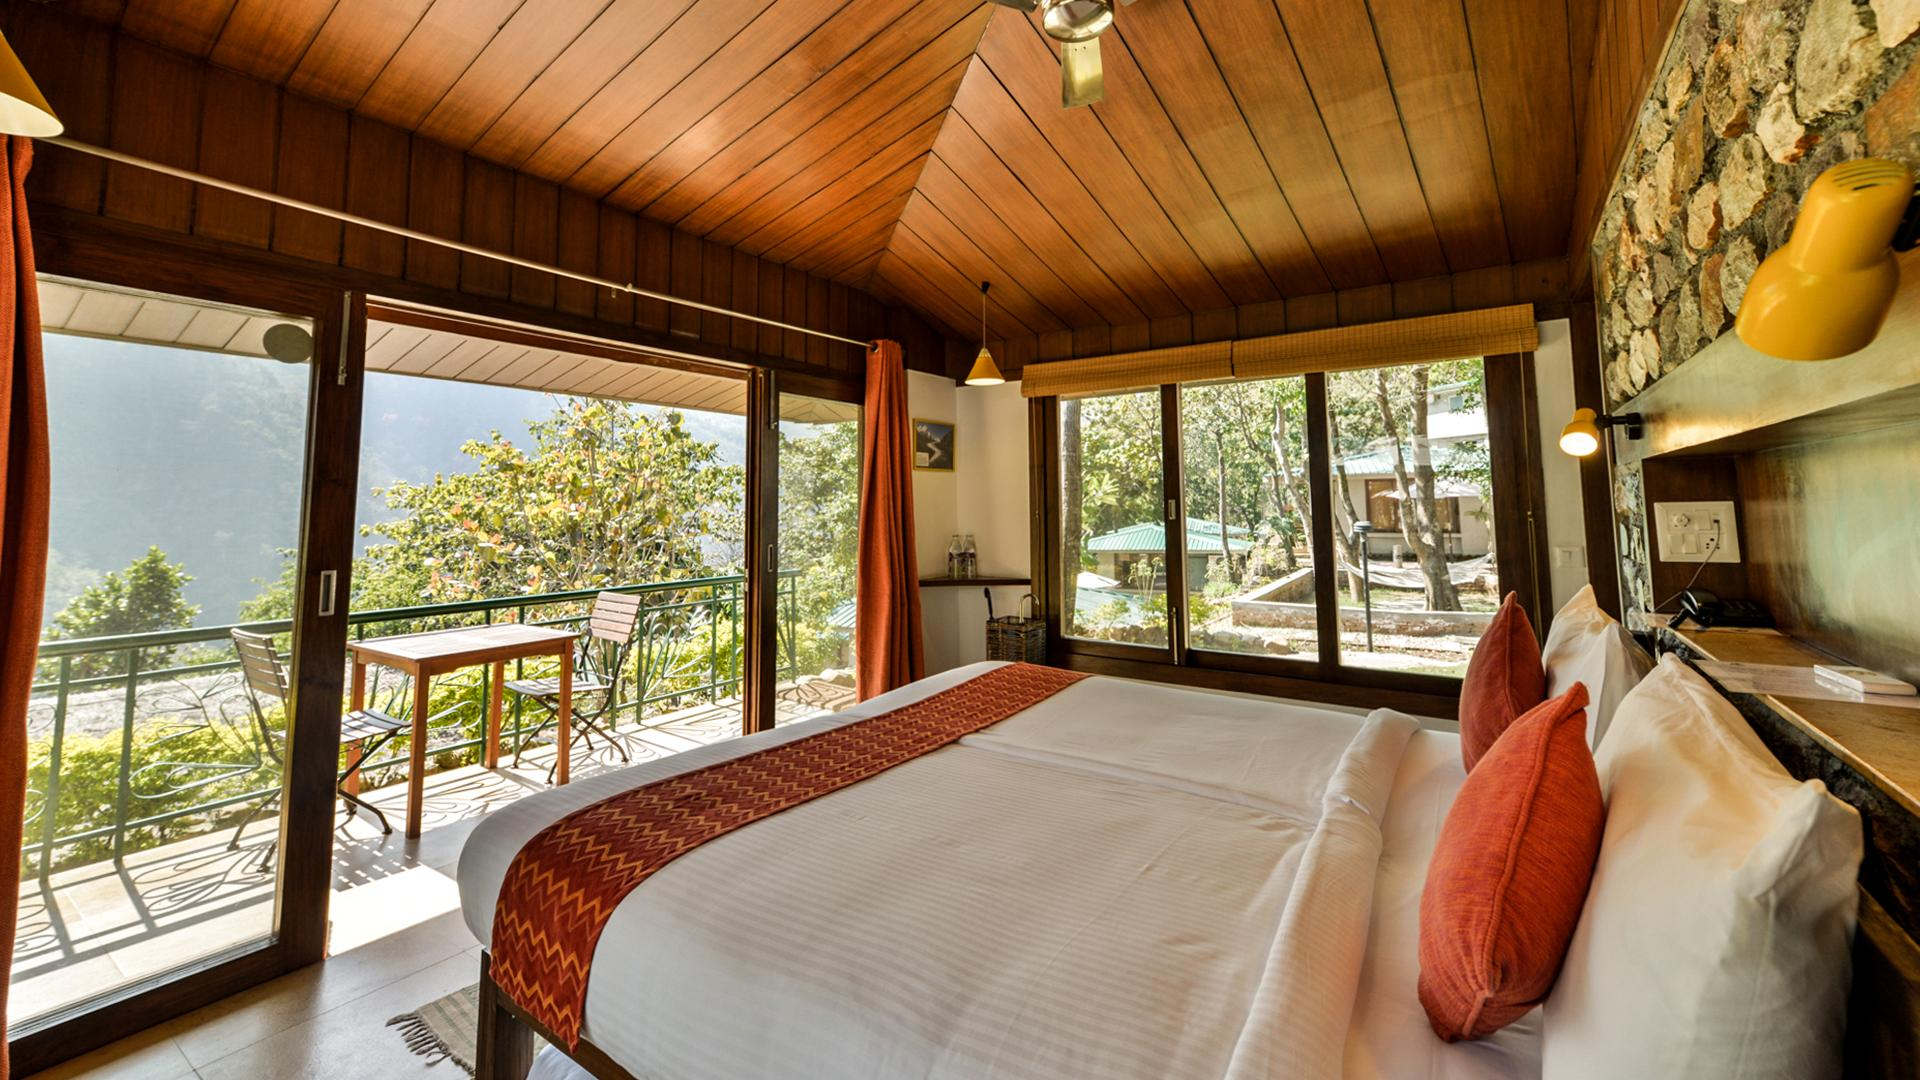 Independent Cottage - With Activities image 1 at Atali Ganga by Tehri Garhwal, Uttarakhand, India